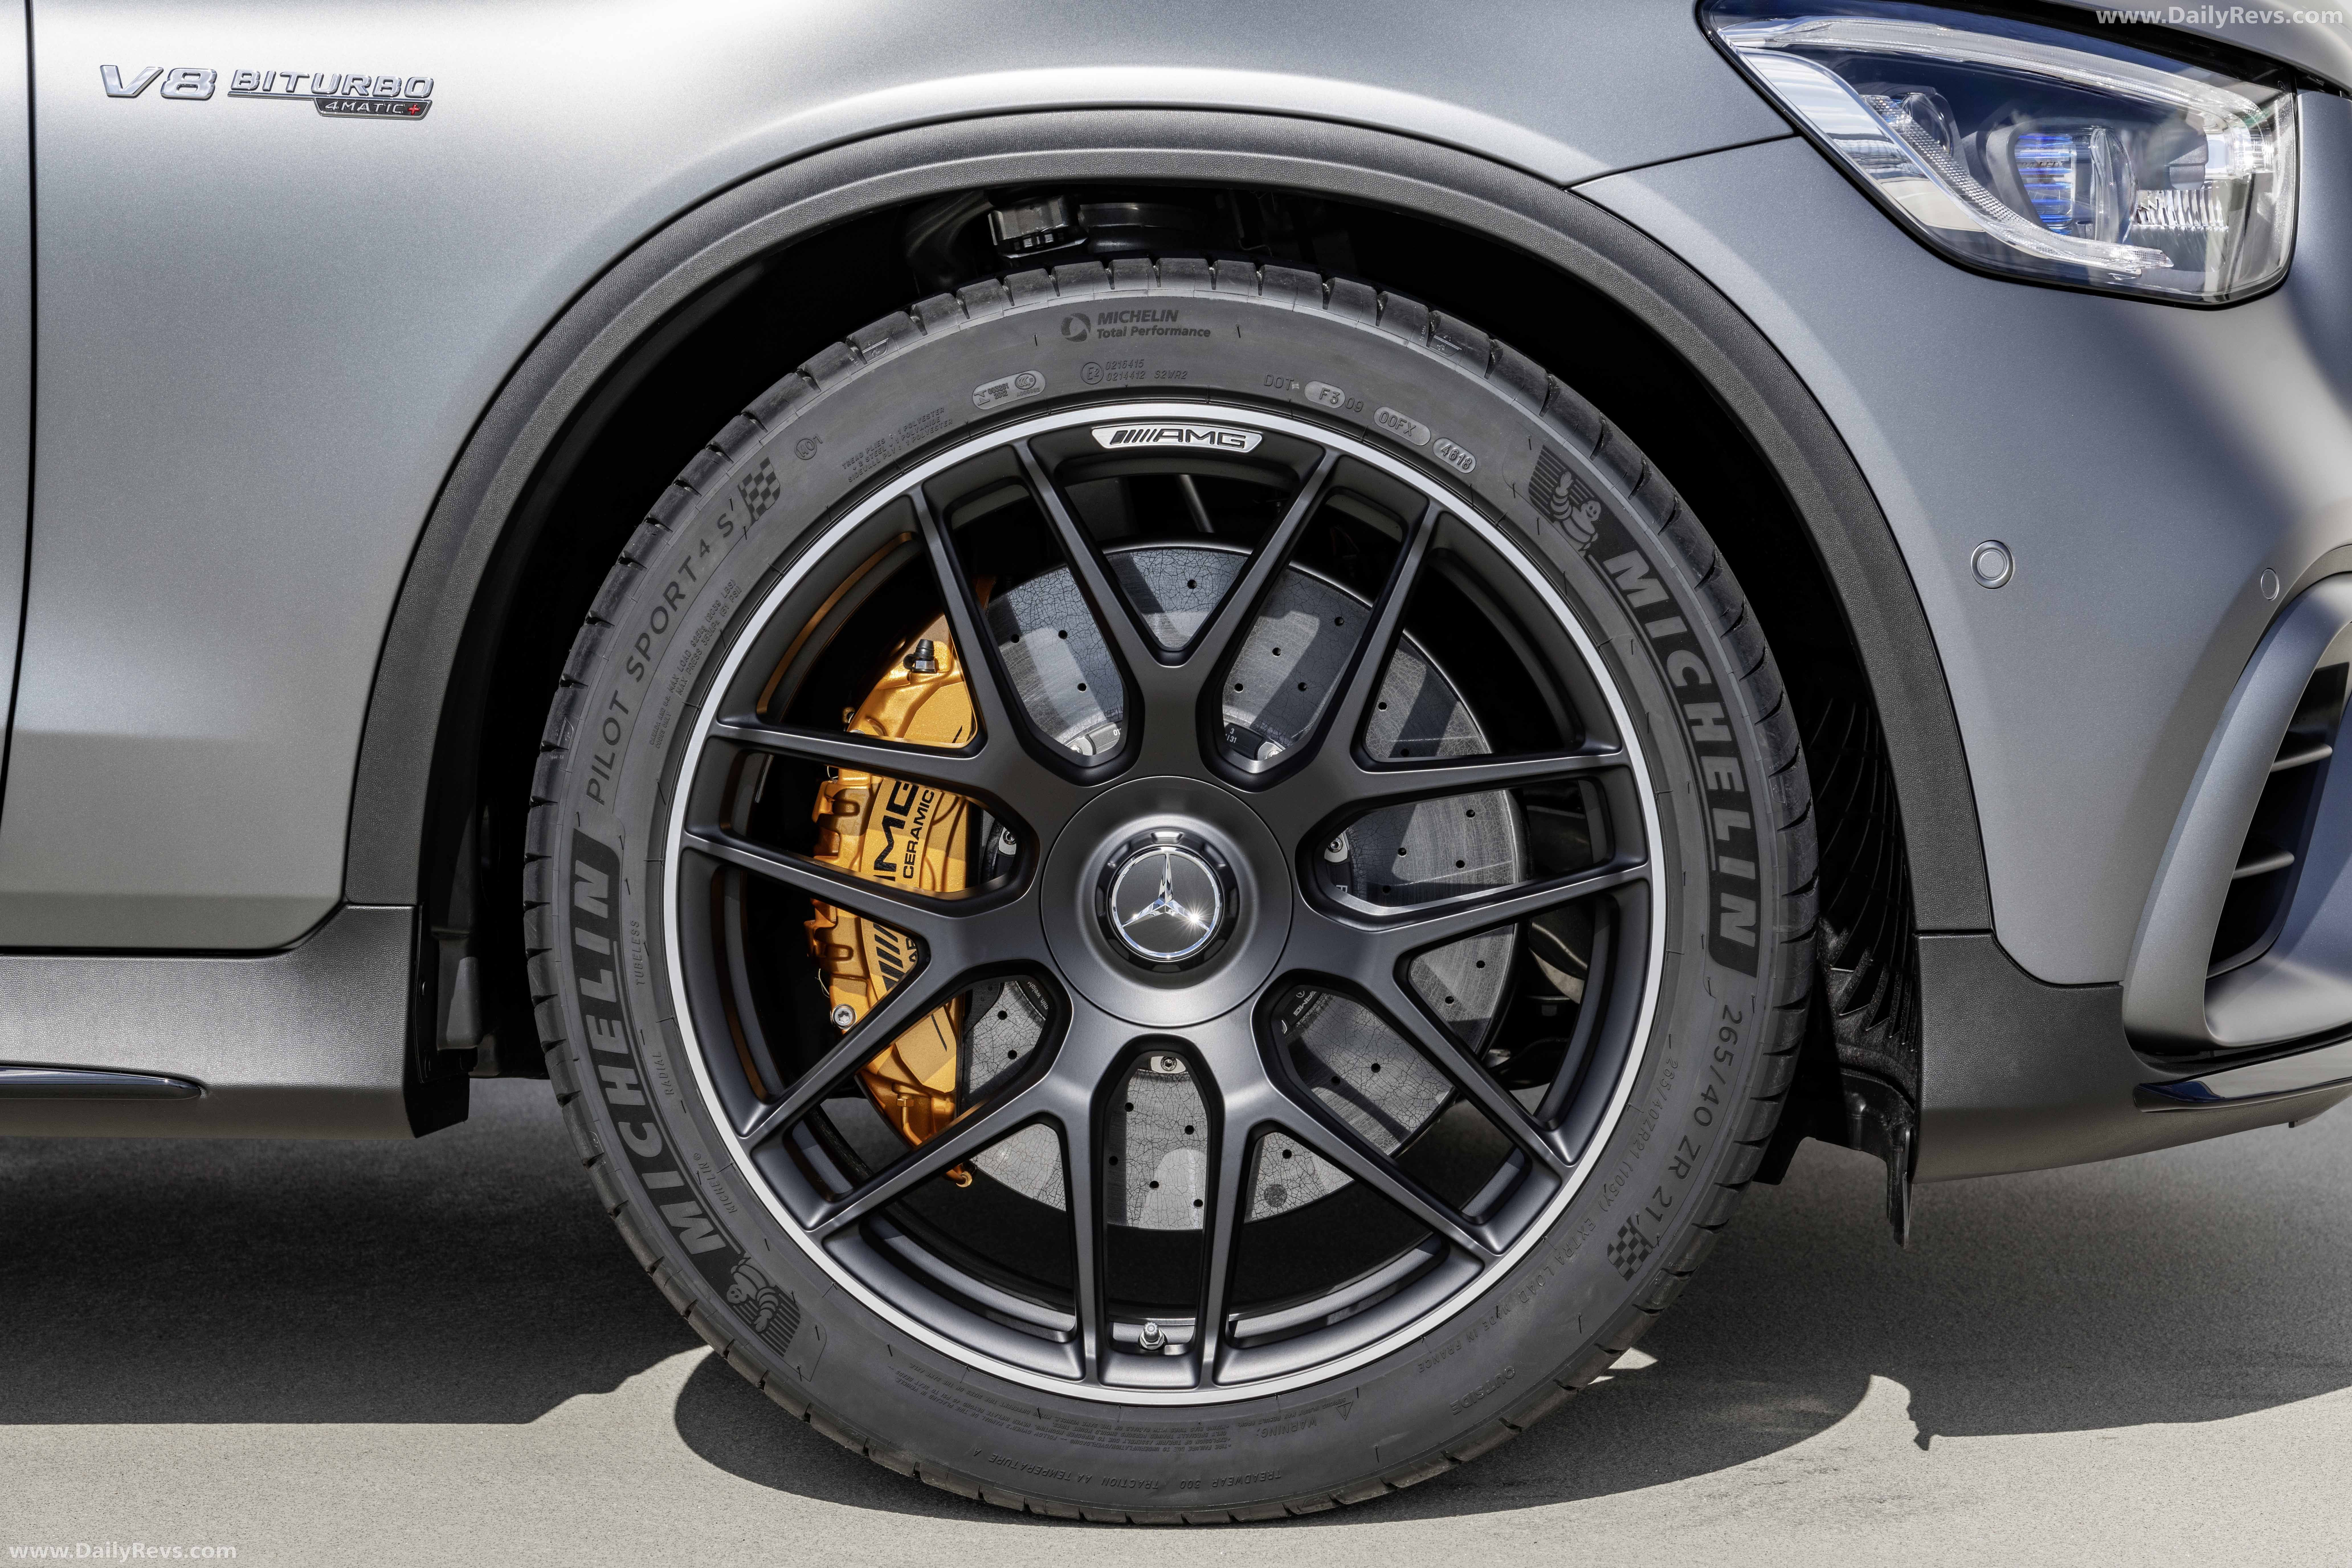 2020 mercedesbenz glc63 s amg coupe dailyrevs in 2020